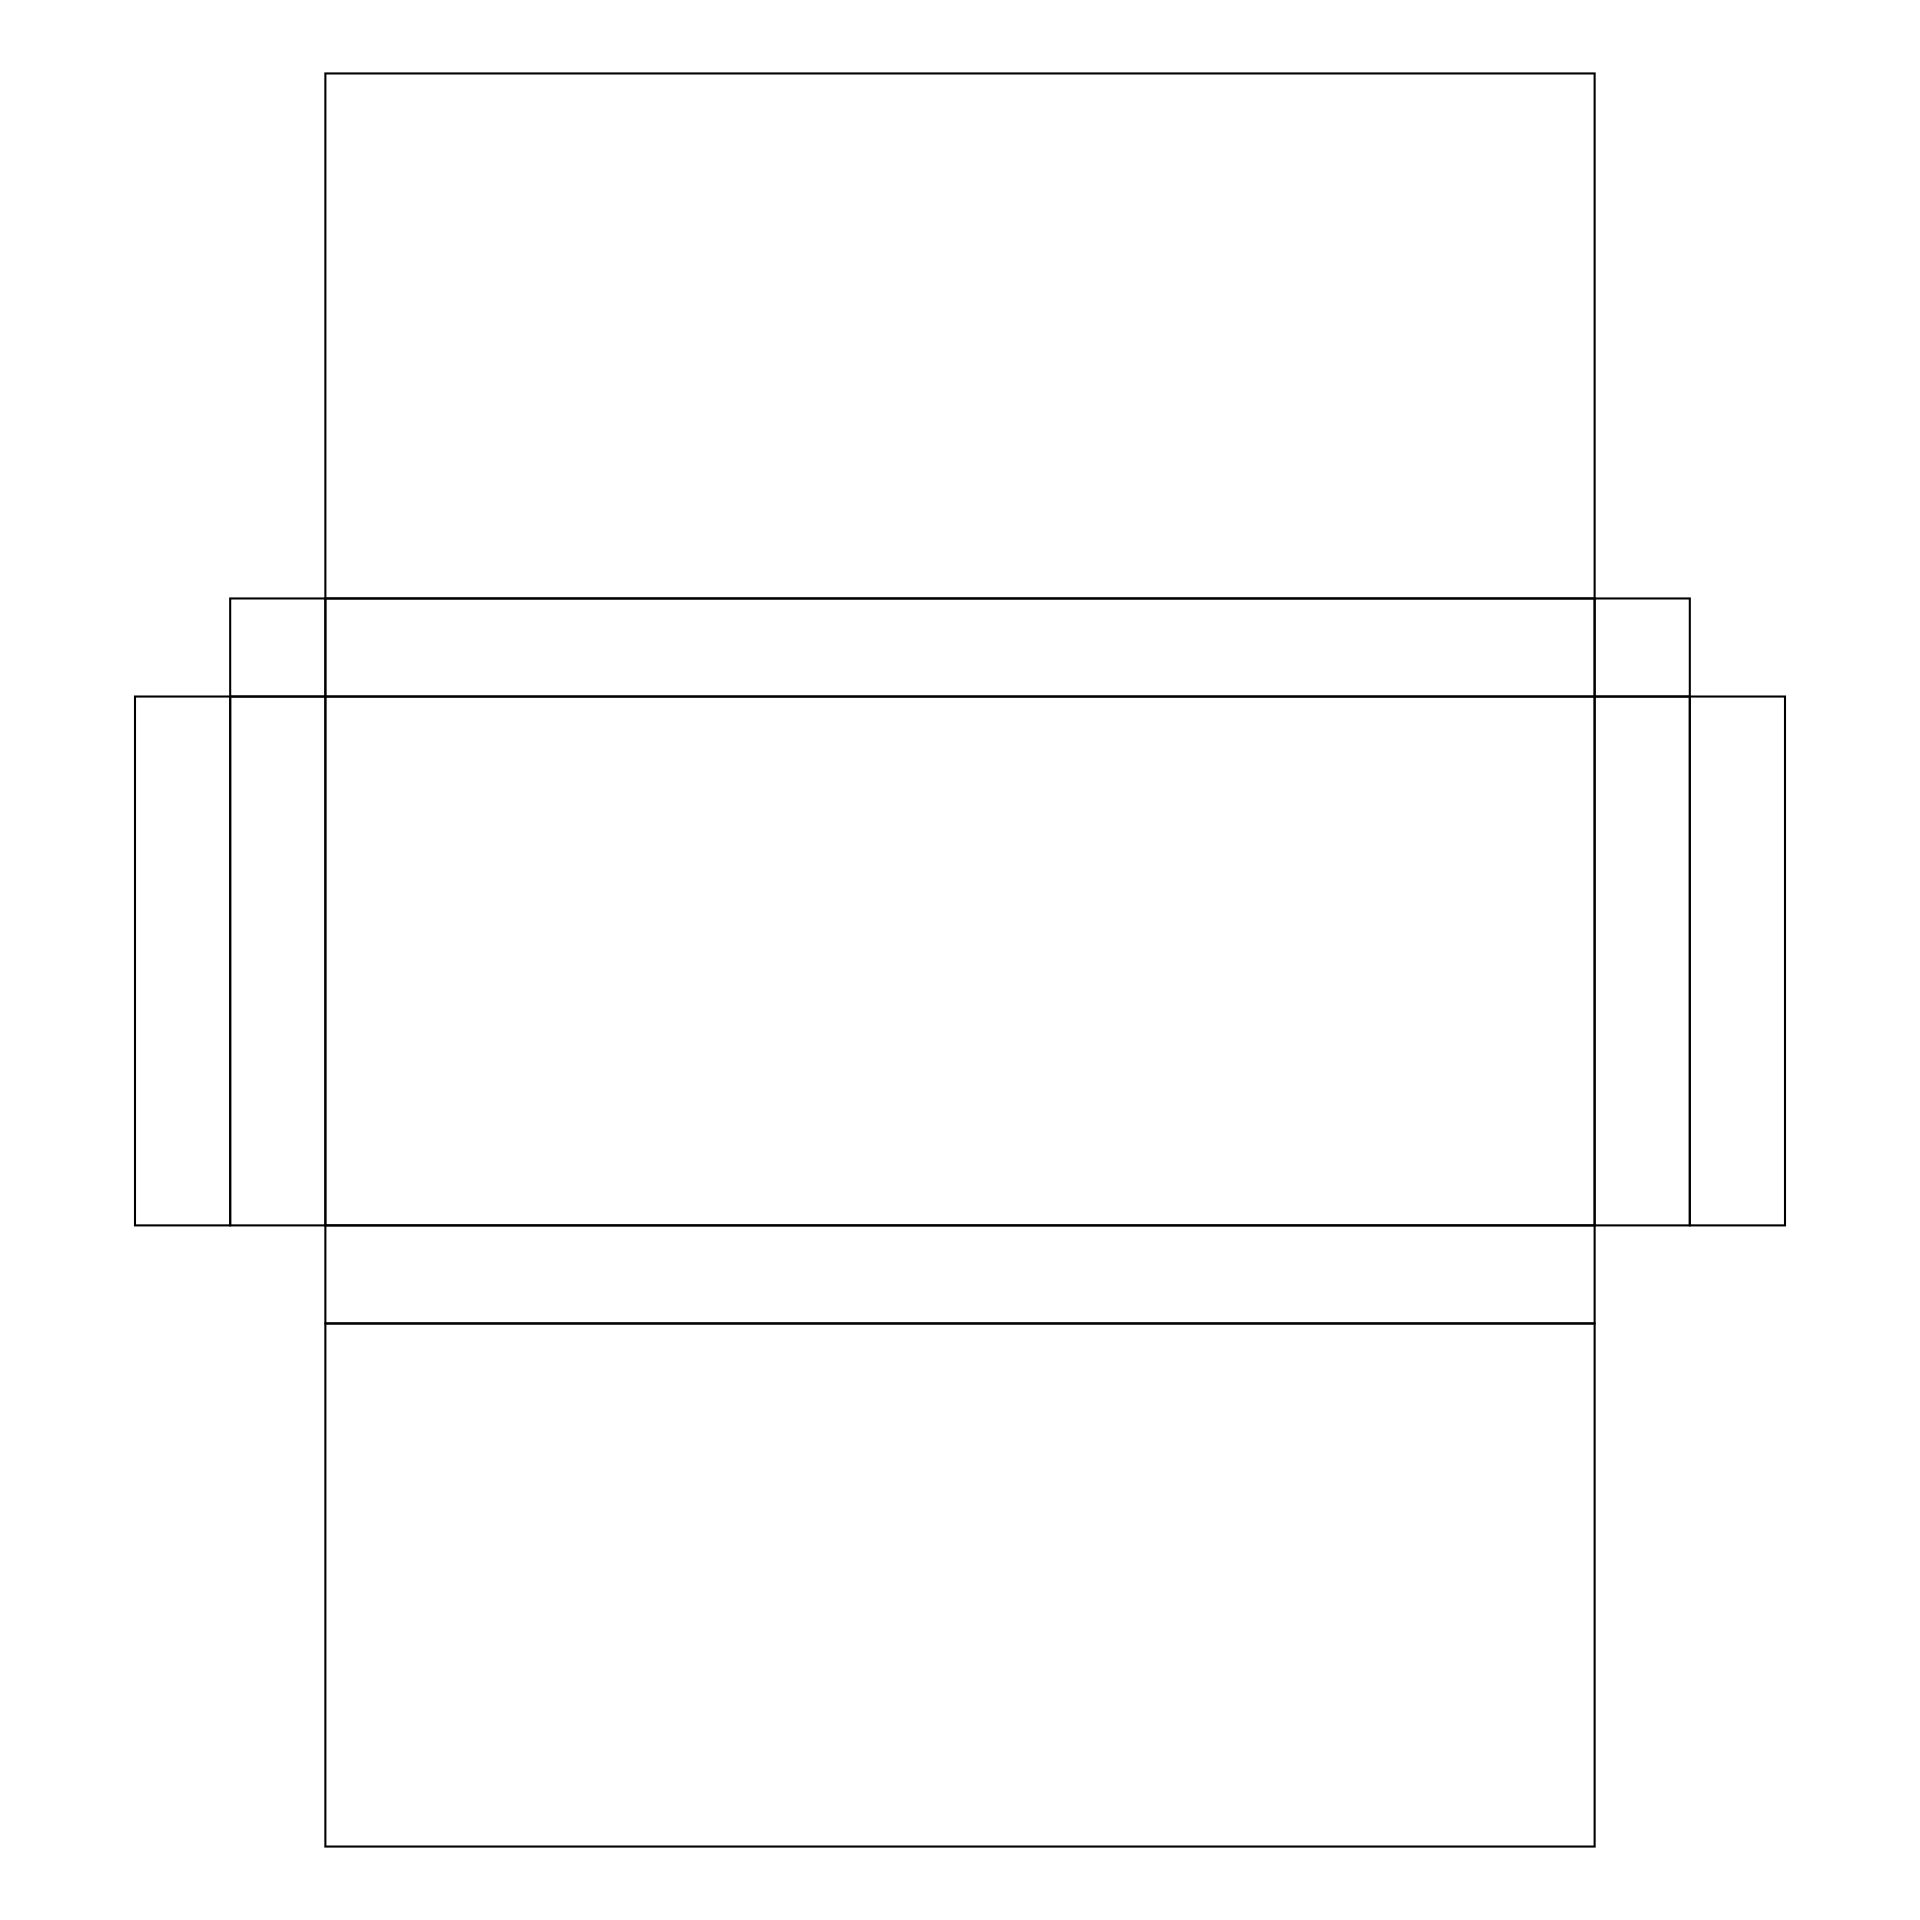 Hershey Candy Bar Wrapper Blank Template